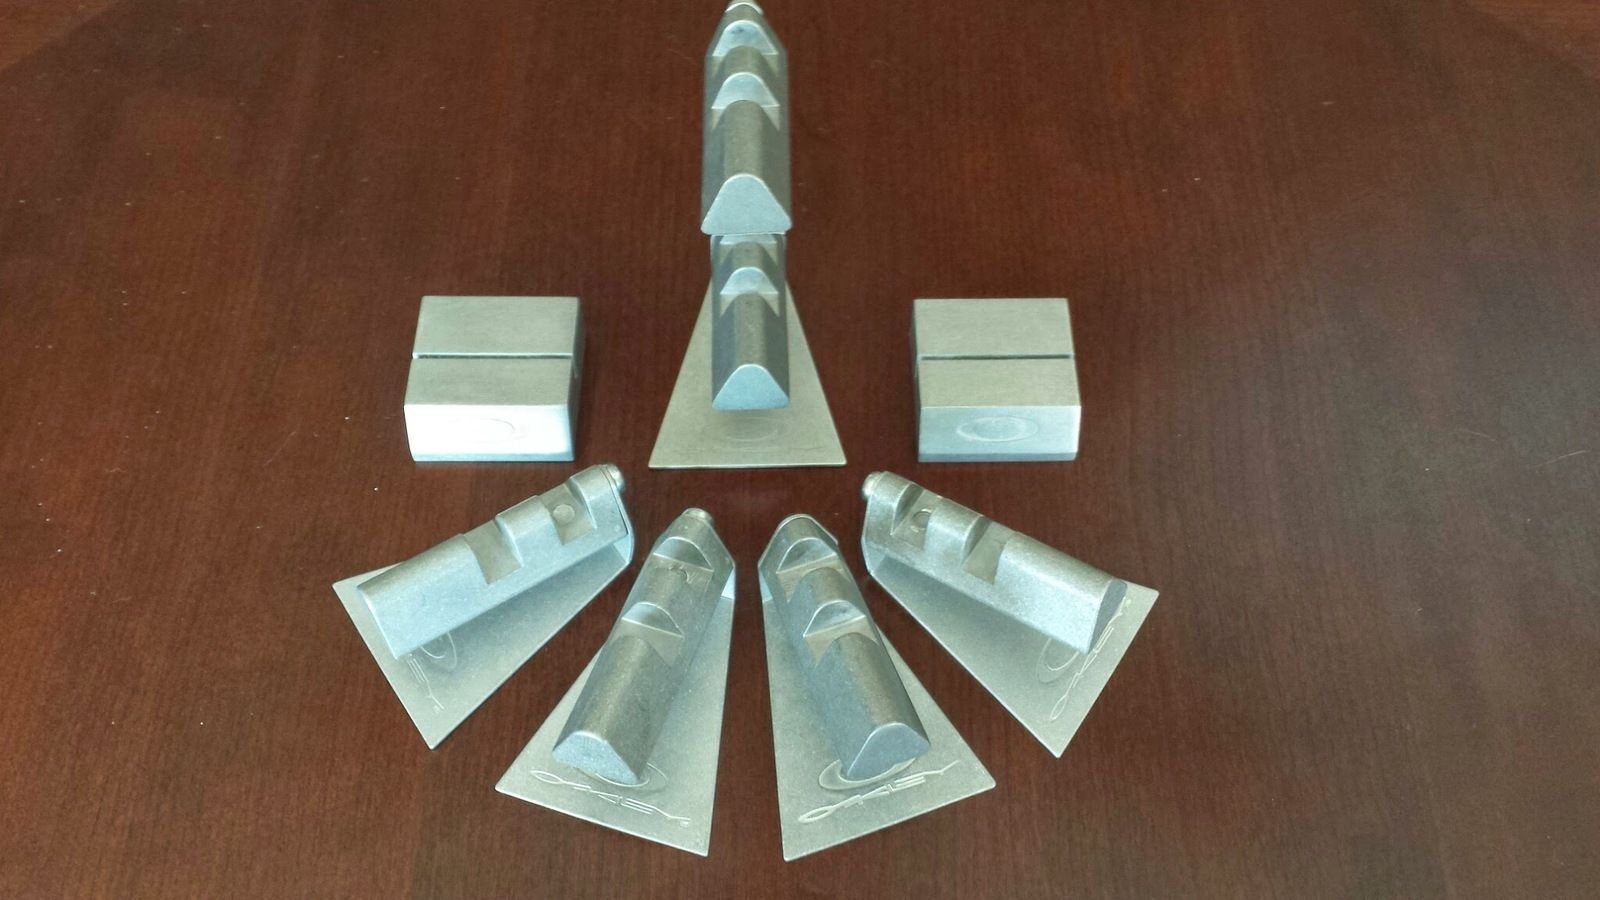 5 Display Stands With 2 Card Holders $55 Shipped - 20140322_135603.jpg